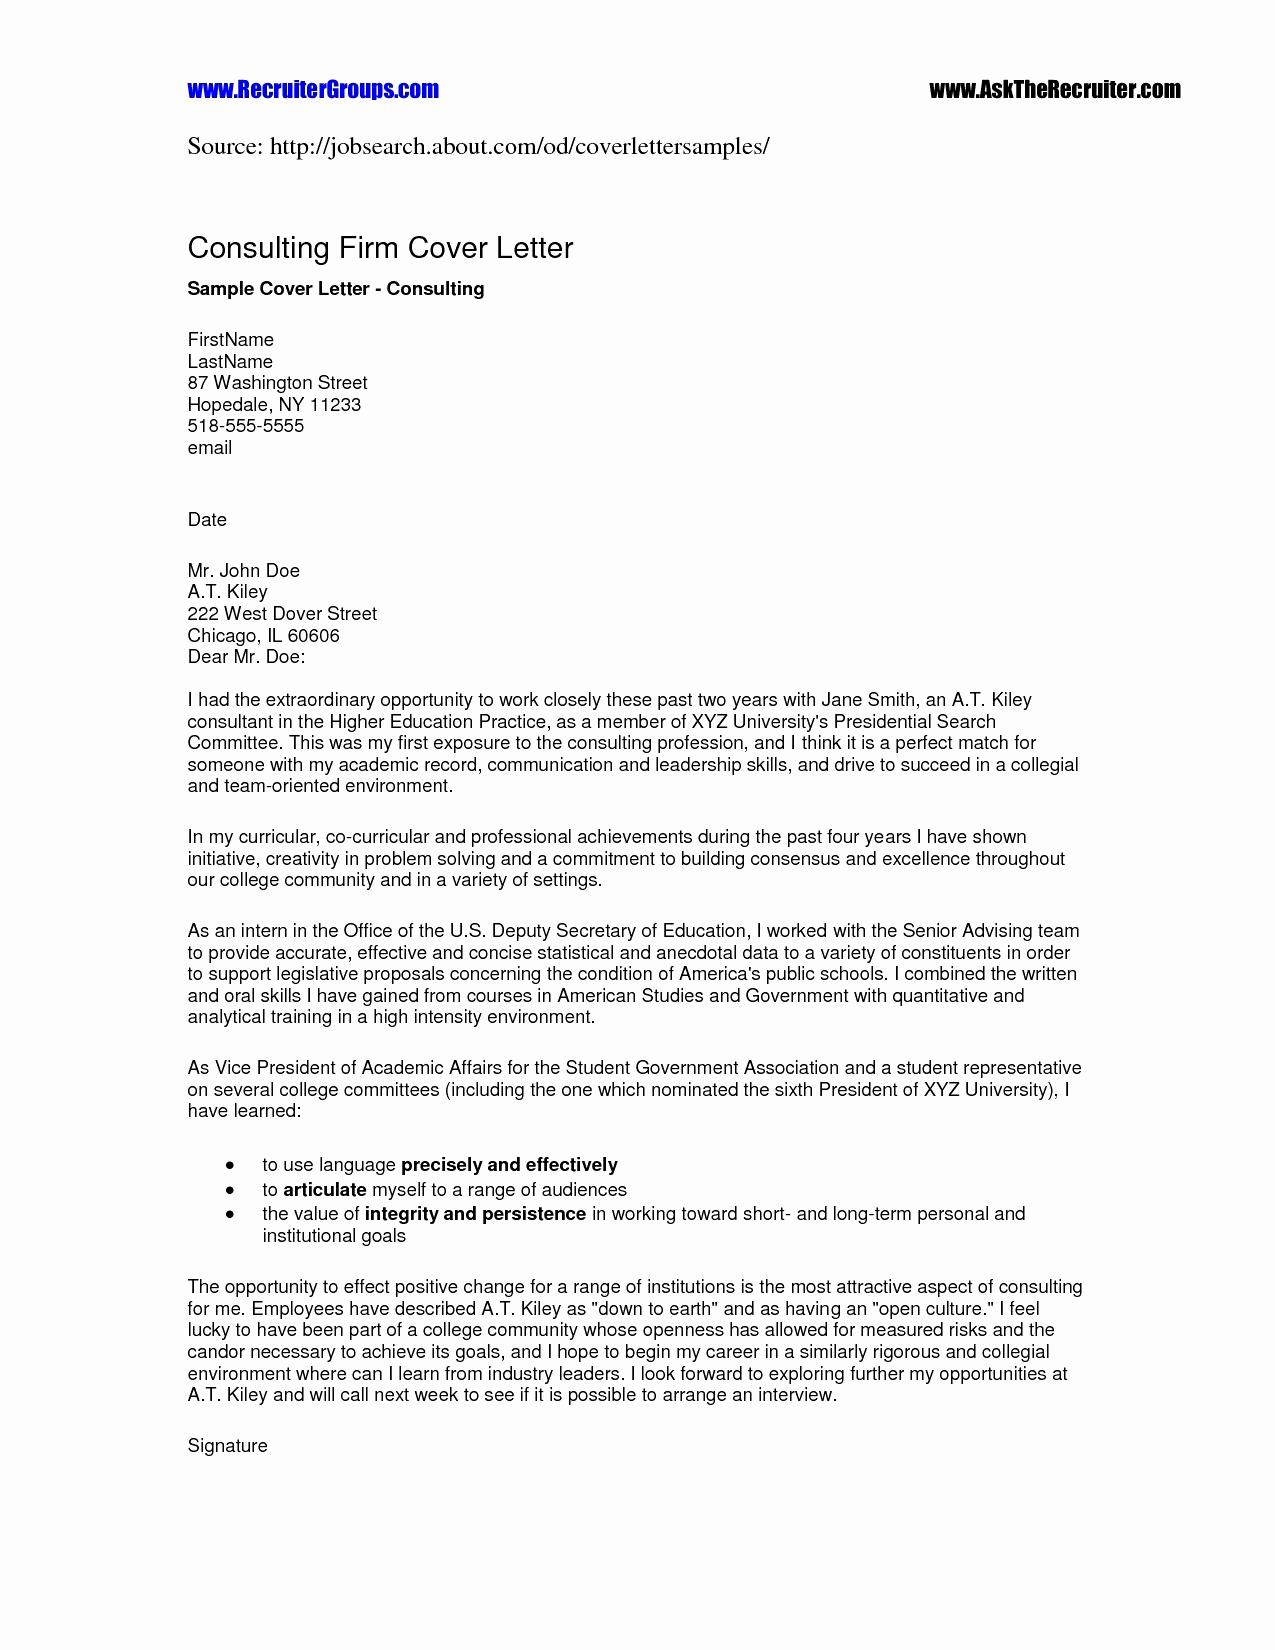 Child Care Skills for Resume - Cover Letter for Child Care Fresh Childcare Cover Letter Examples